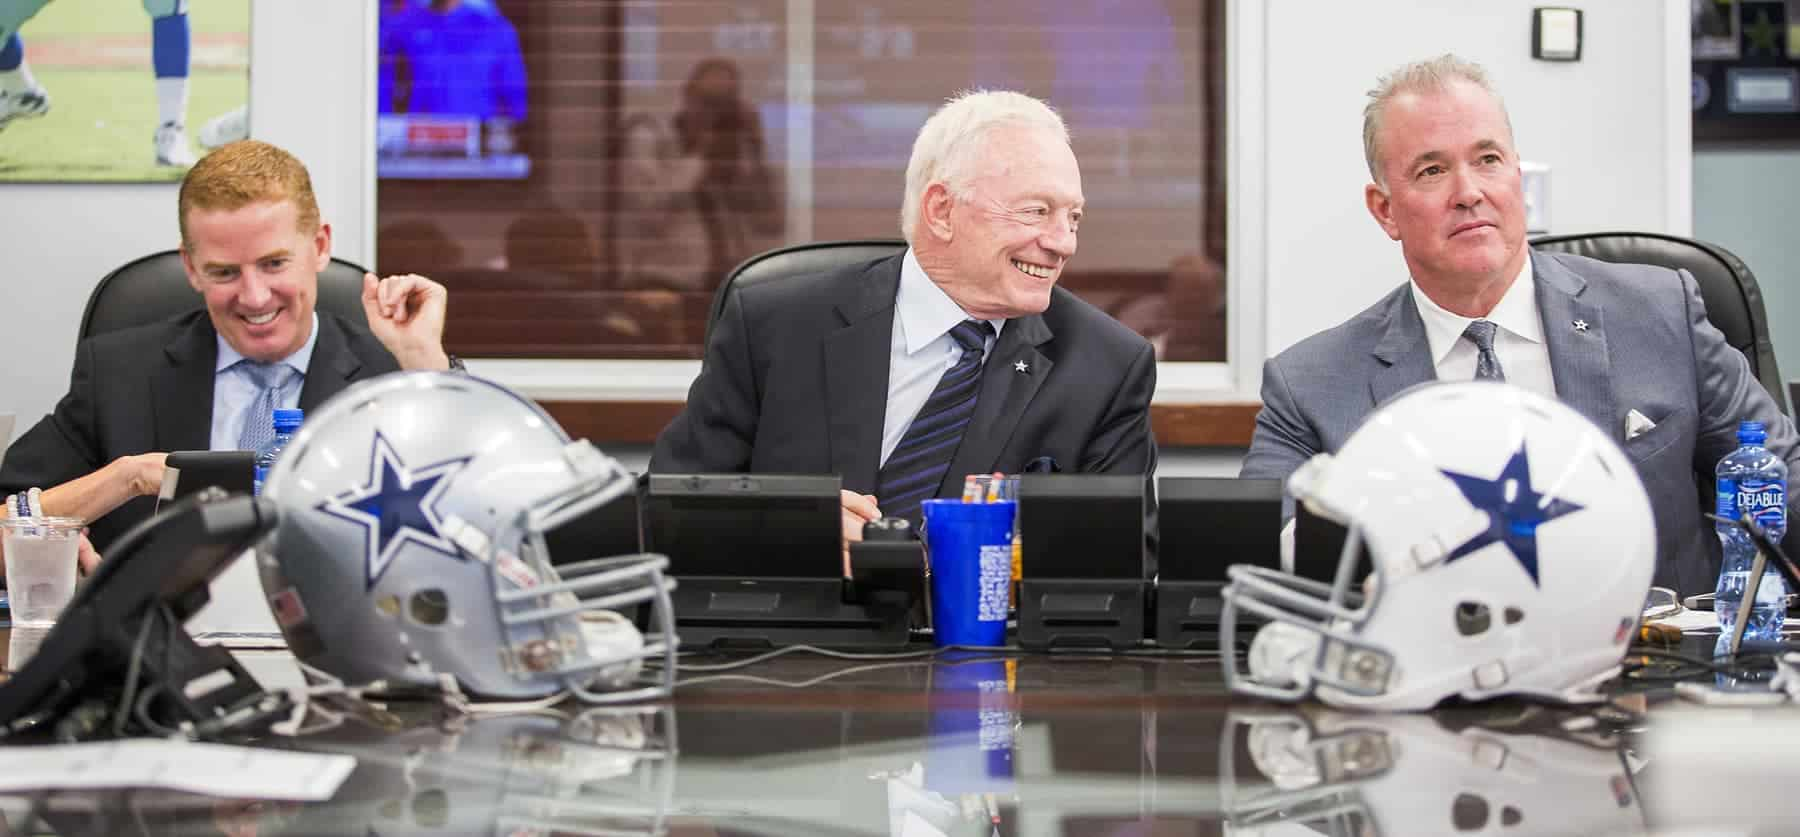 The latest on the Dallas Cowboys, Mel Tucker, Big 12 Draft Prospects, and more (Draft Insiders Podcast)